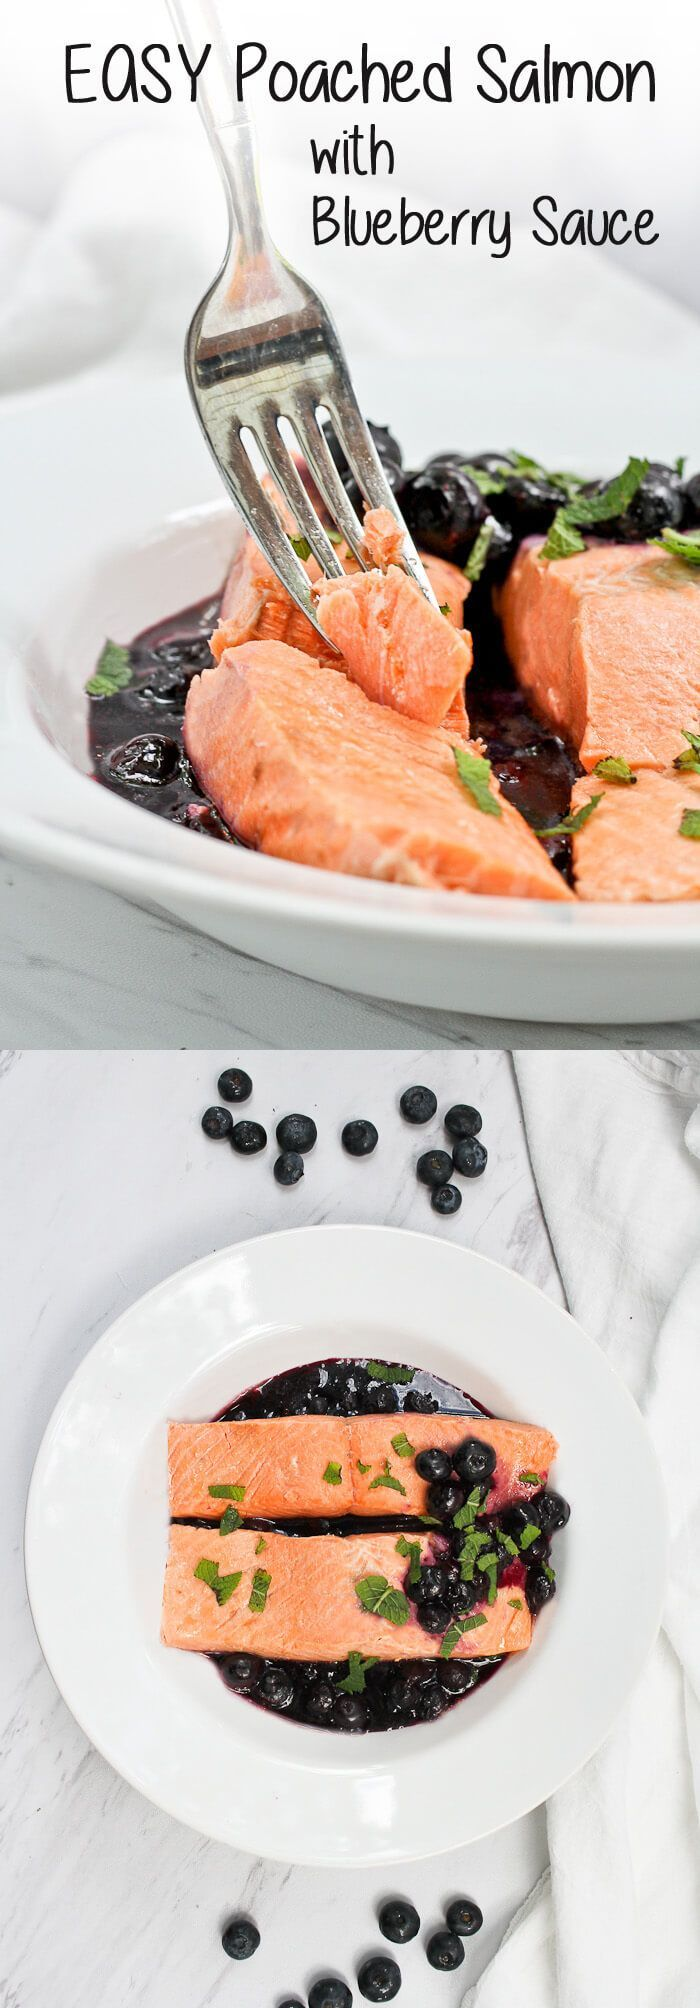 Best 25 poached salmon ideas on pinterest salmon wrap for Poaching fish in wine